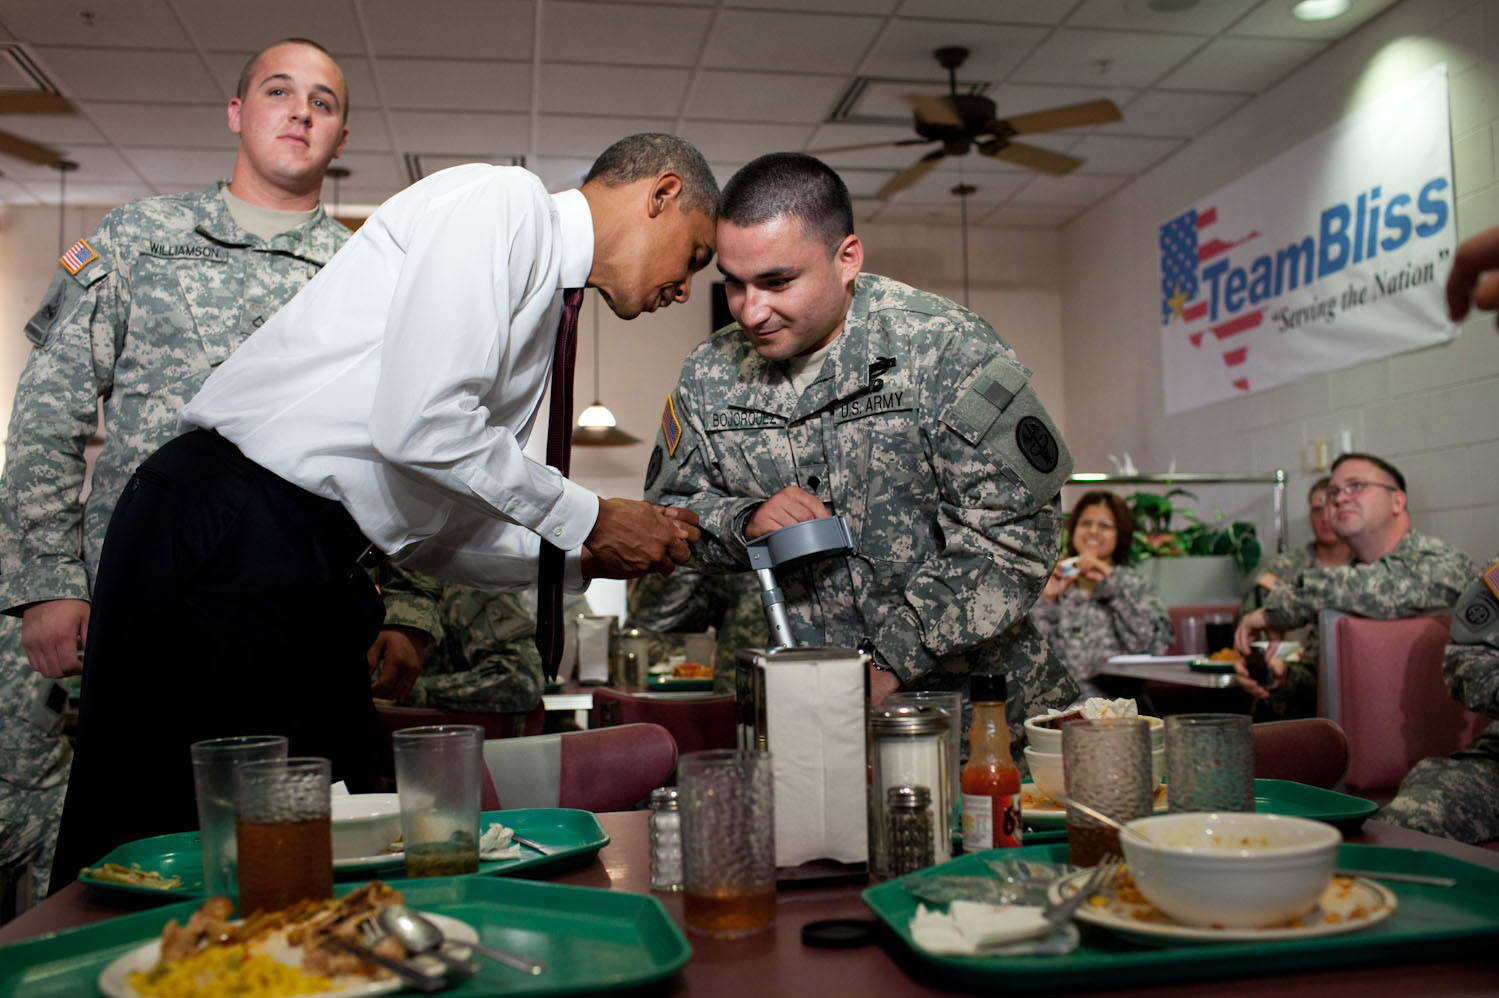 President Barack Obama Greets Members of the Military at Fort Bliss in El Paso, Texas